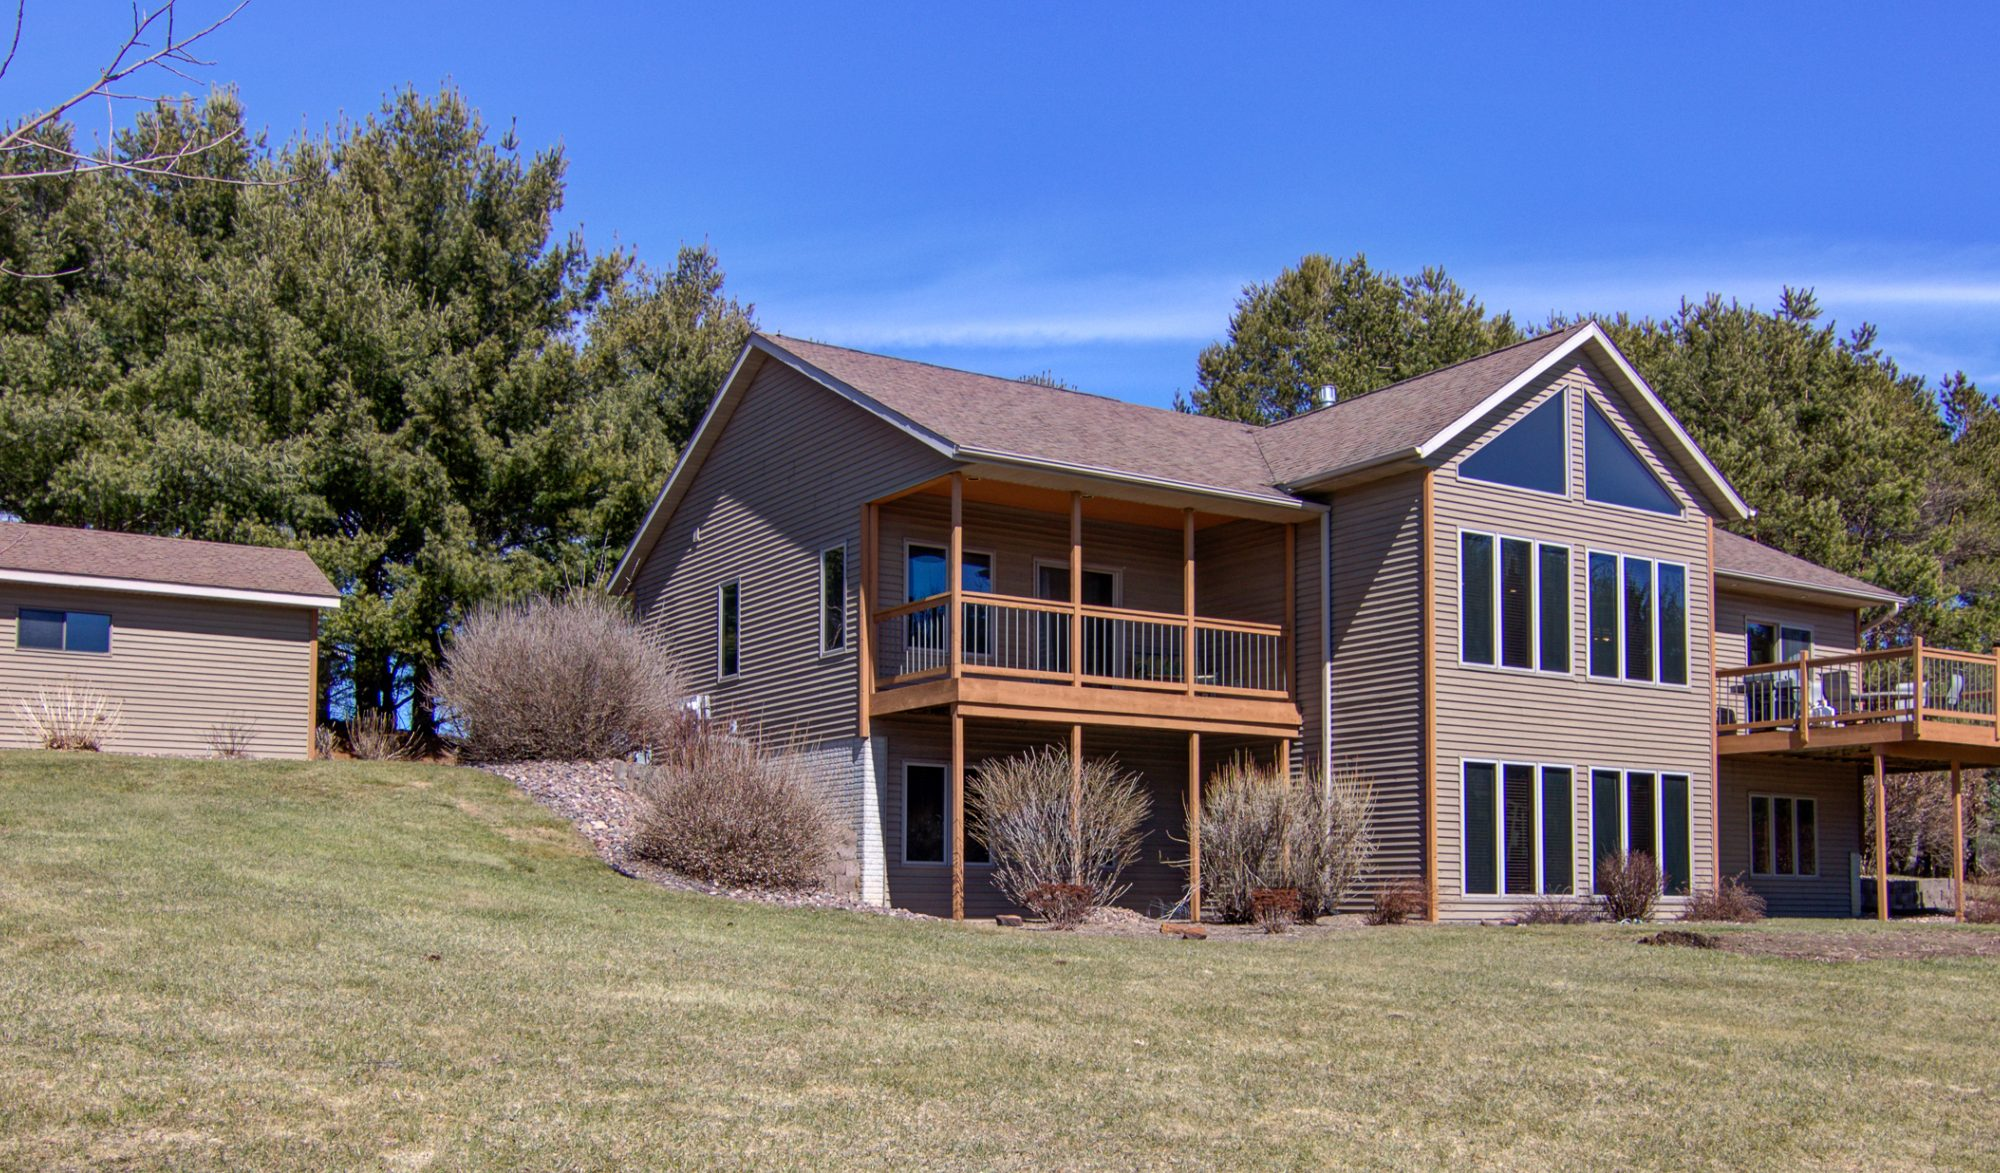 Blog gorgeous house on 15 acres 10 minutes from of eau claire check out this gorgeous house at s8670 heartwood drive eleva eau claire school district with 4 bedrooms 25 baths and a 3 car garage for 329900 it solutioingenieria Choice Image